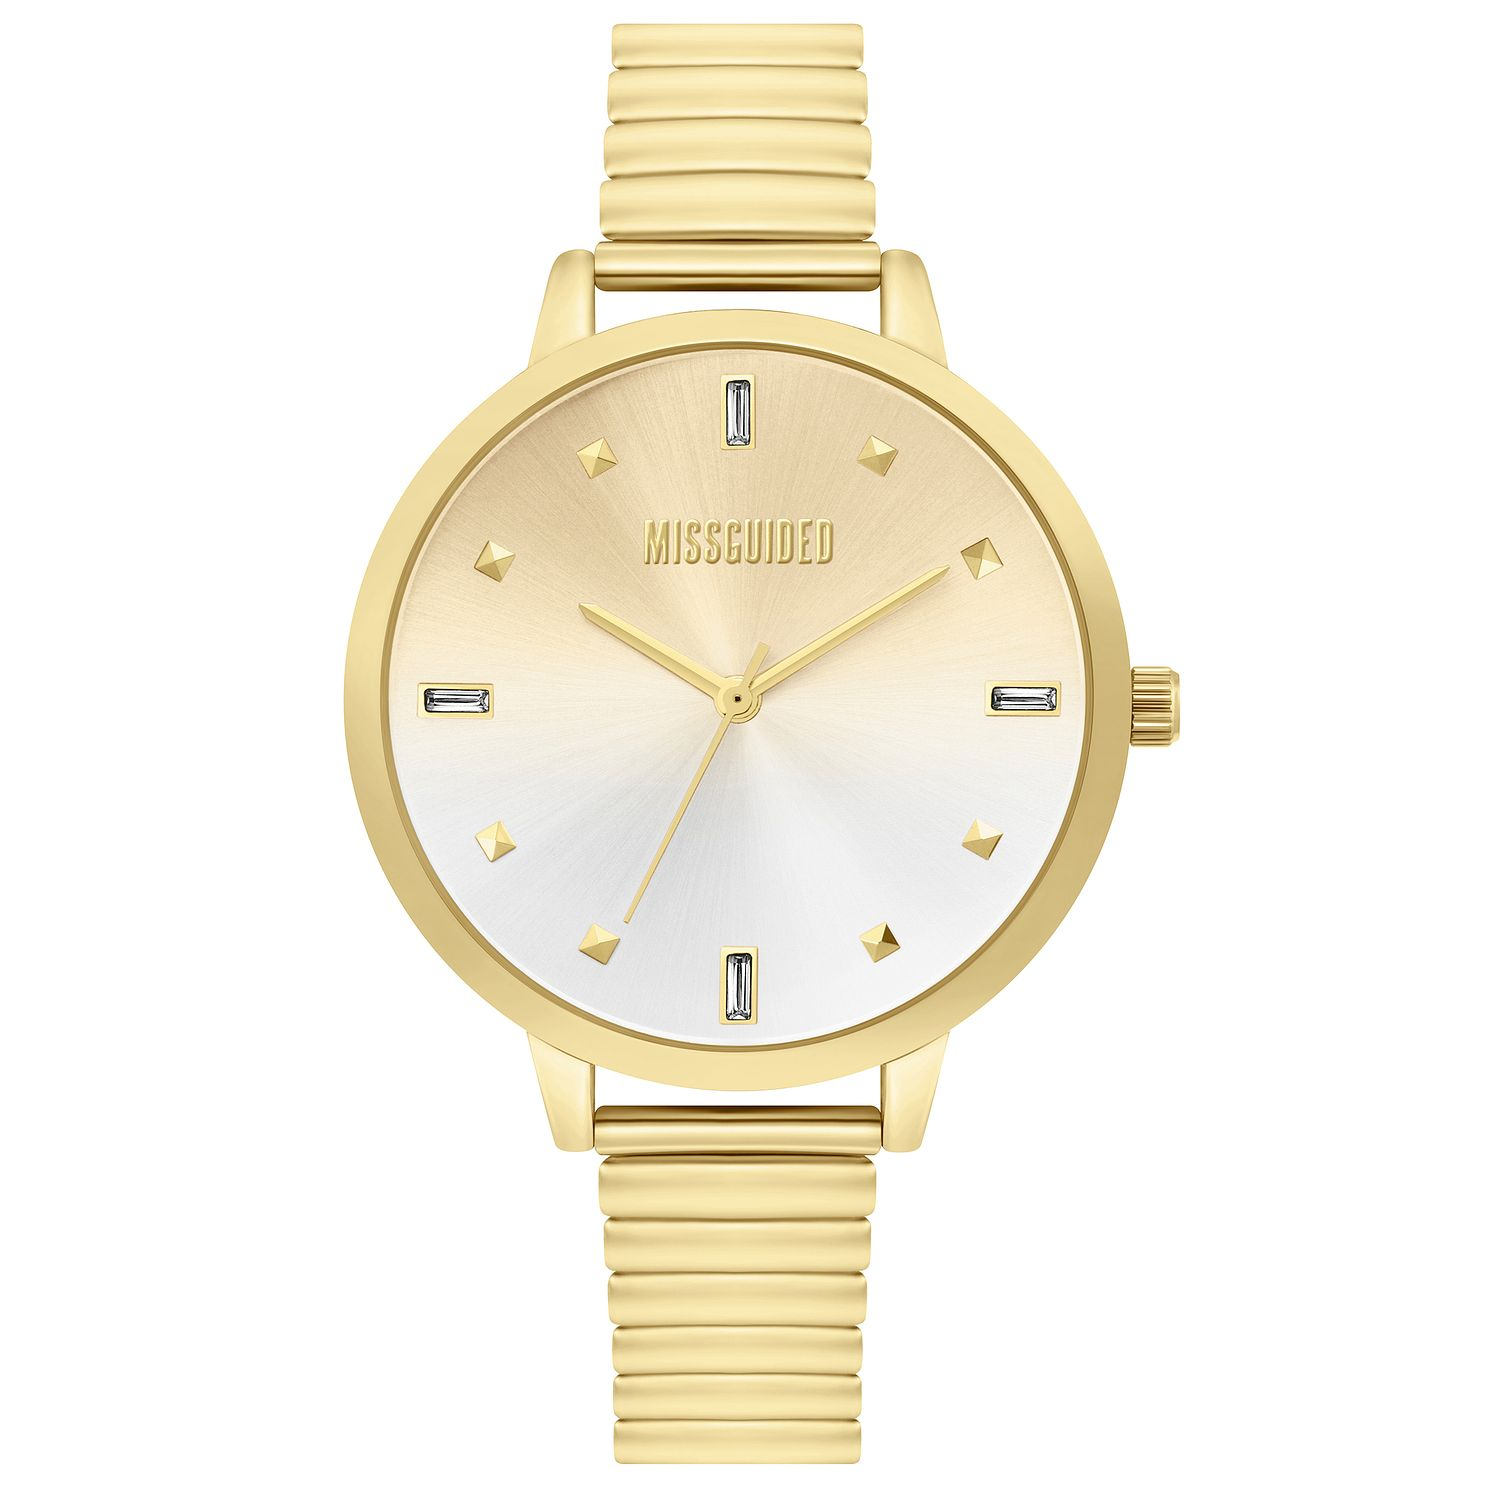 Missguided Ladies' Gold Expander Bracelet Watch - Product number 4095413